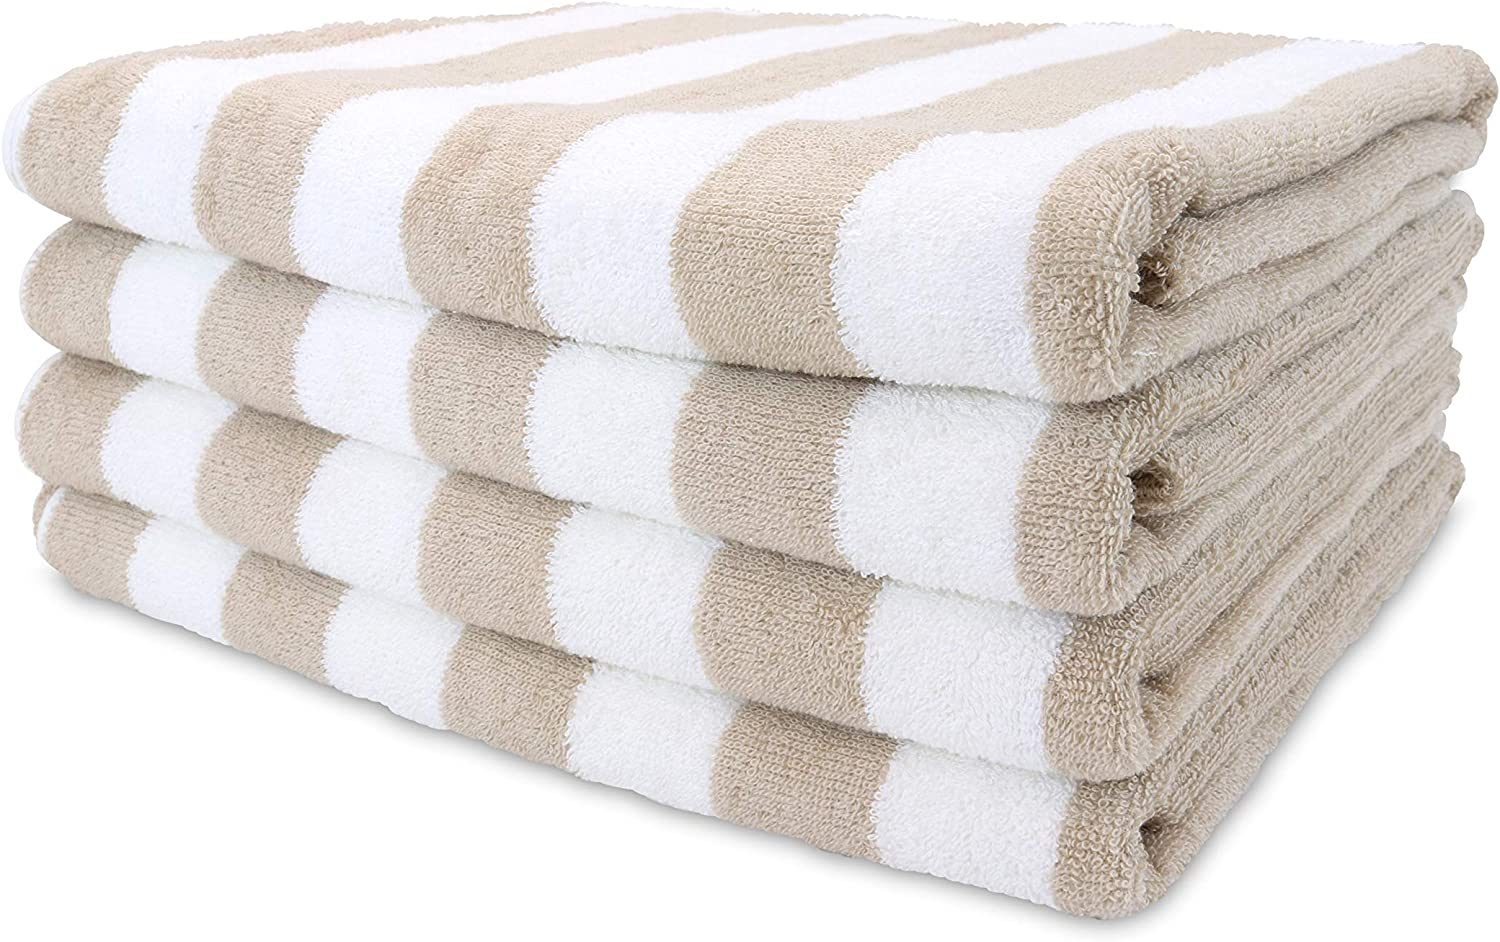 Arkwright California Cabana Striped Beach Towel Pack of 4, Ringspun Cotton Double Yarn Strength